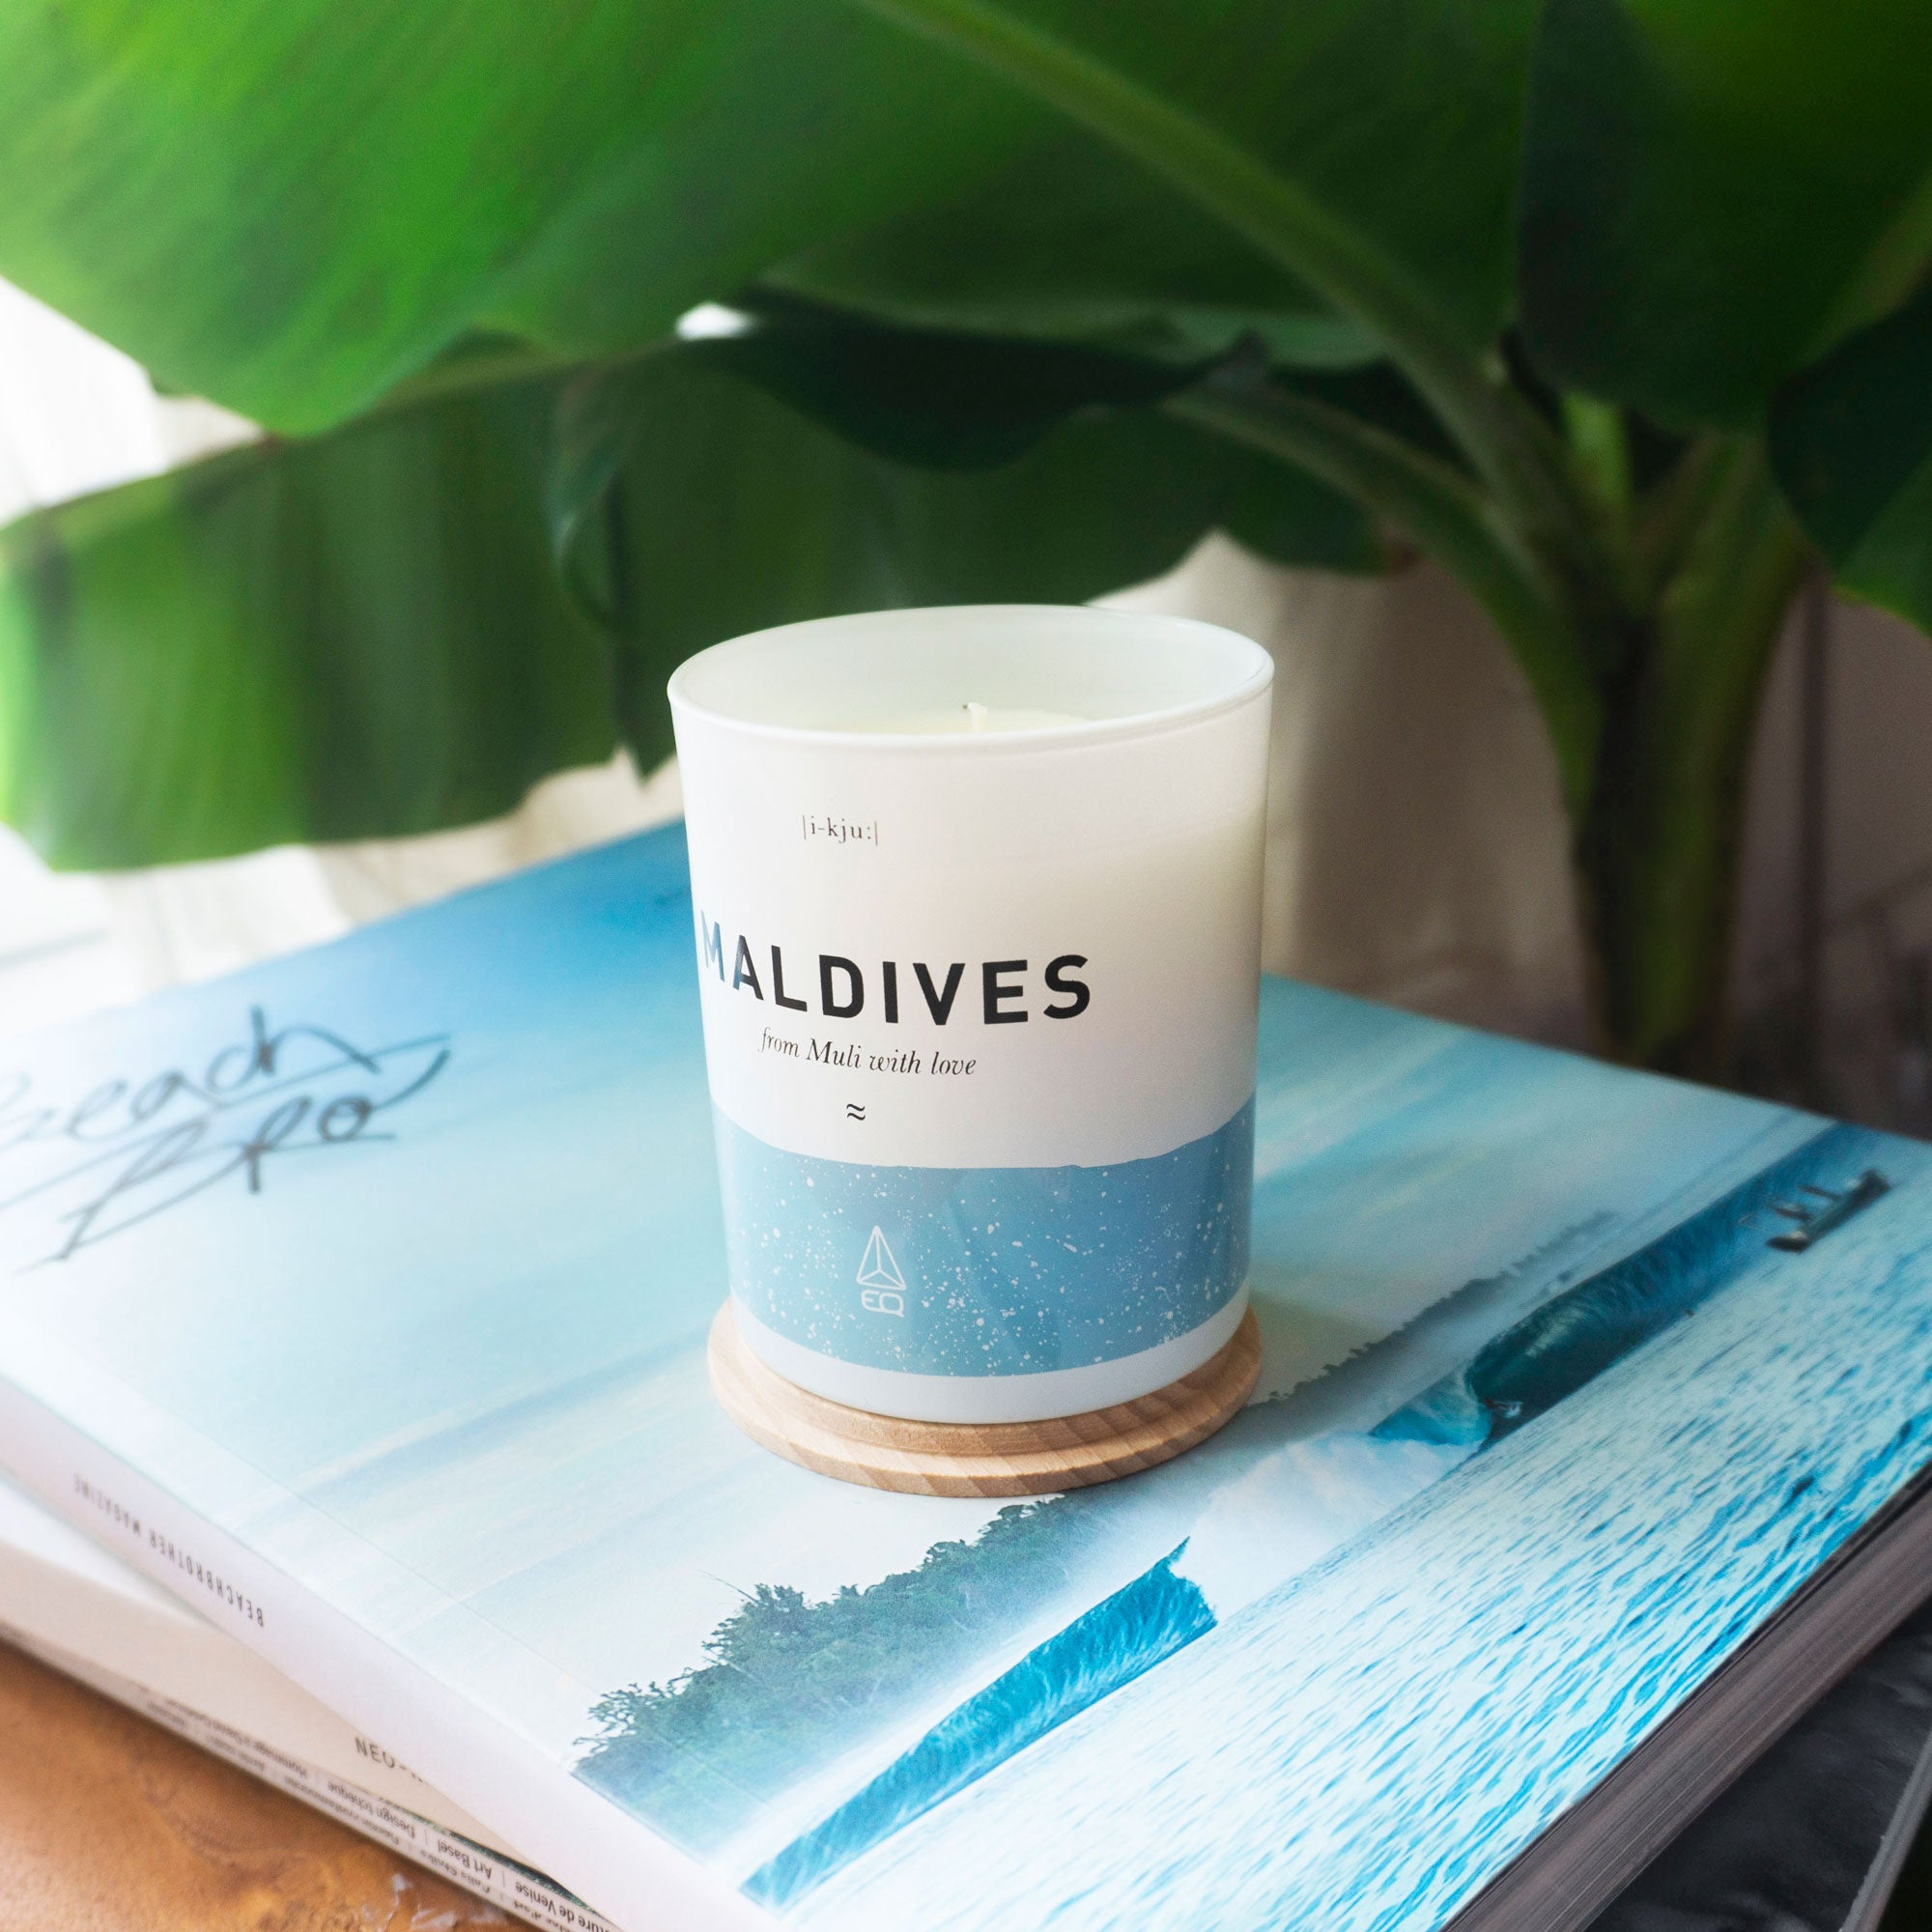 EQ Scented Candle - Maldives image 1